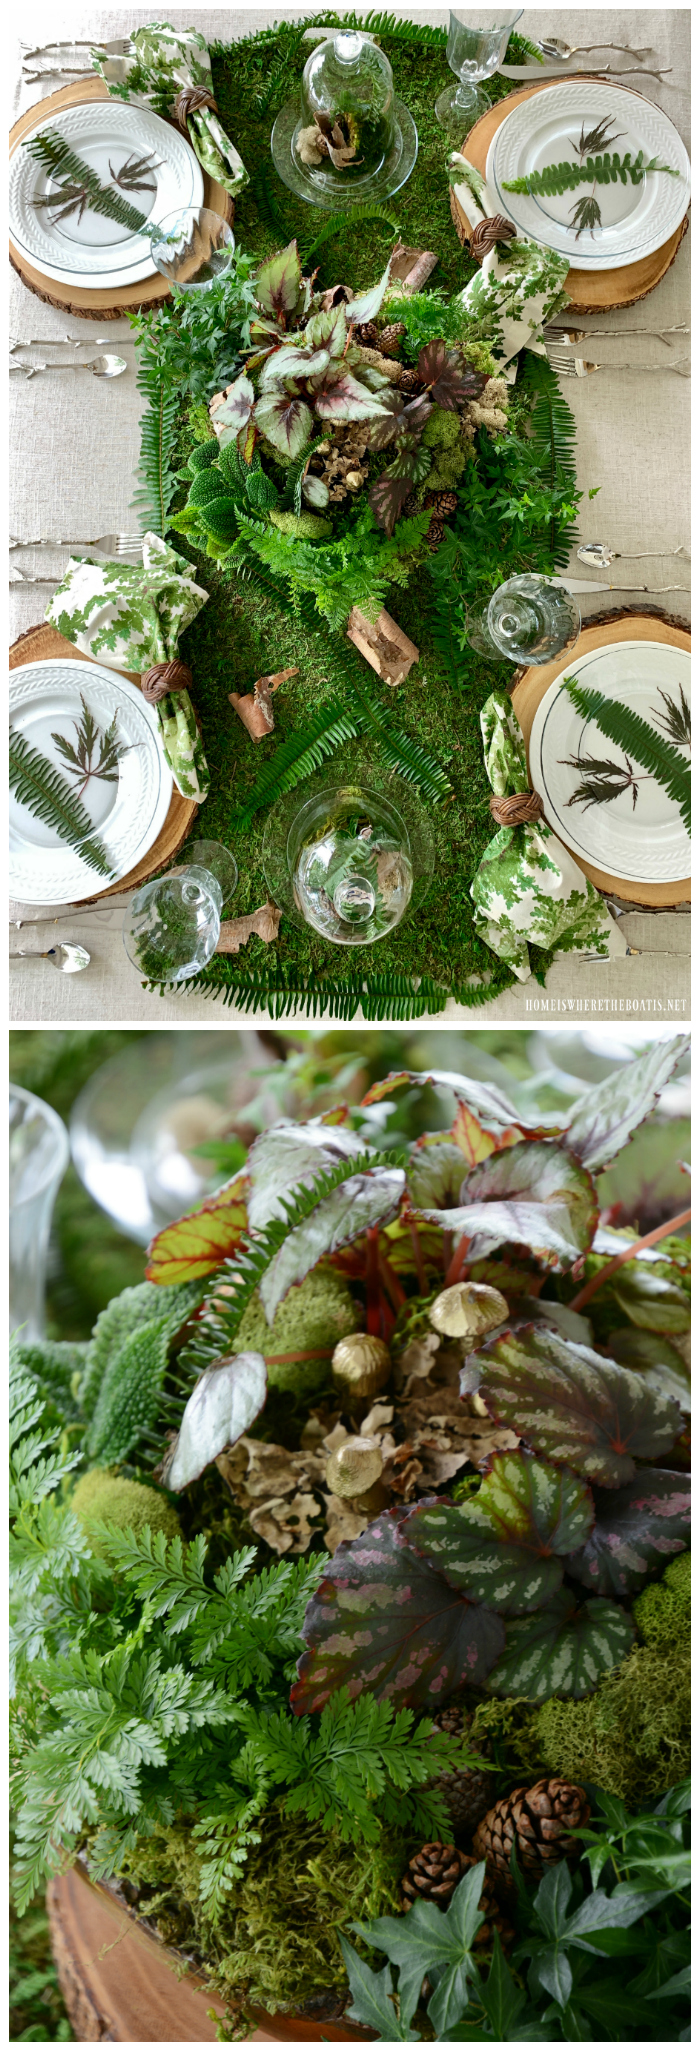 Woodland Table and Mossy DishGarden | ©homeiswheretheboatis.net